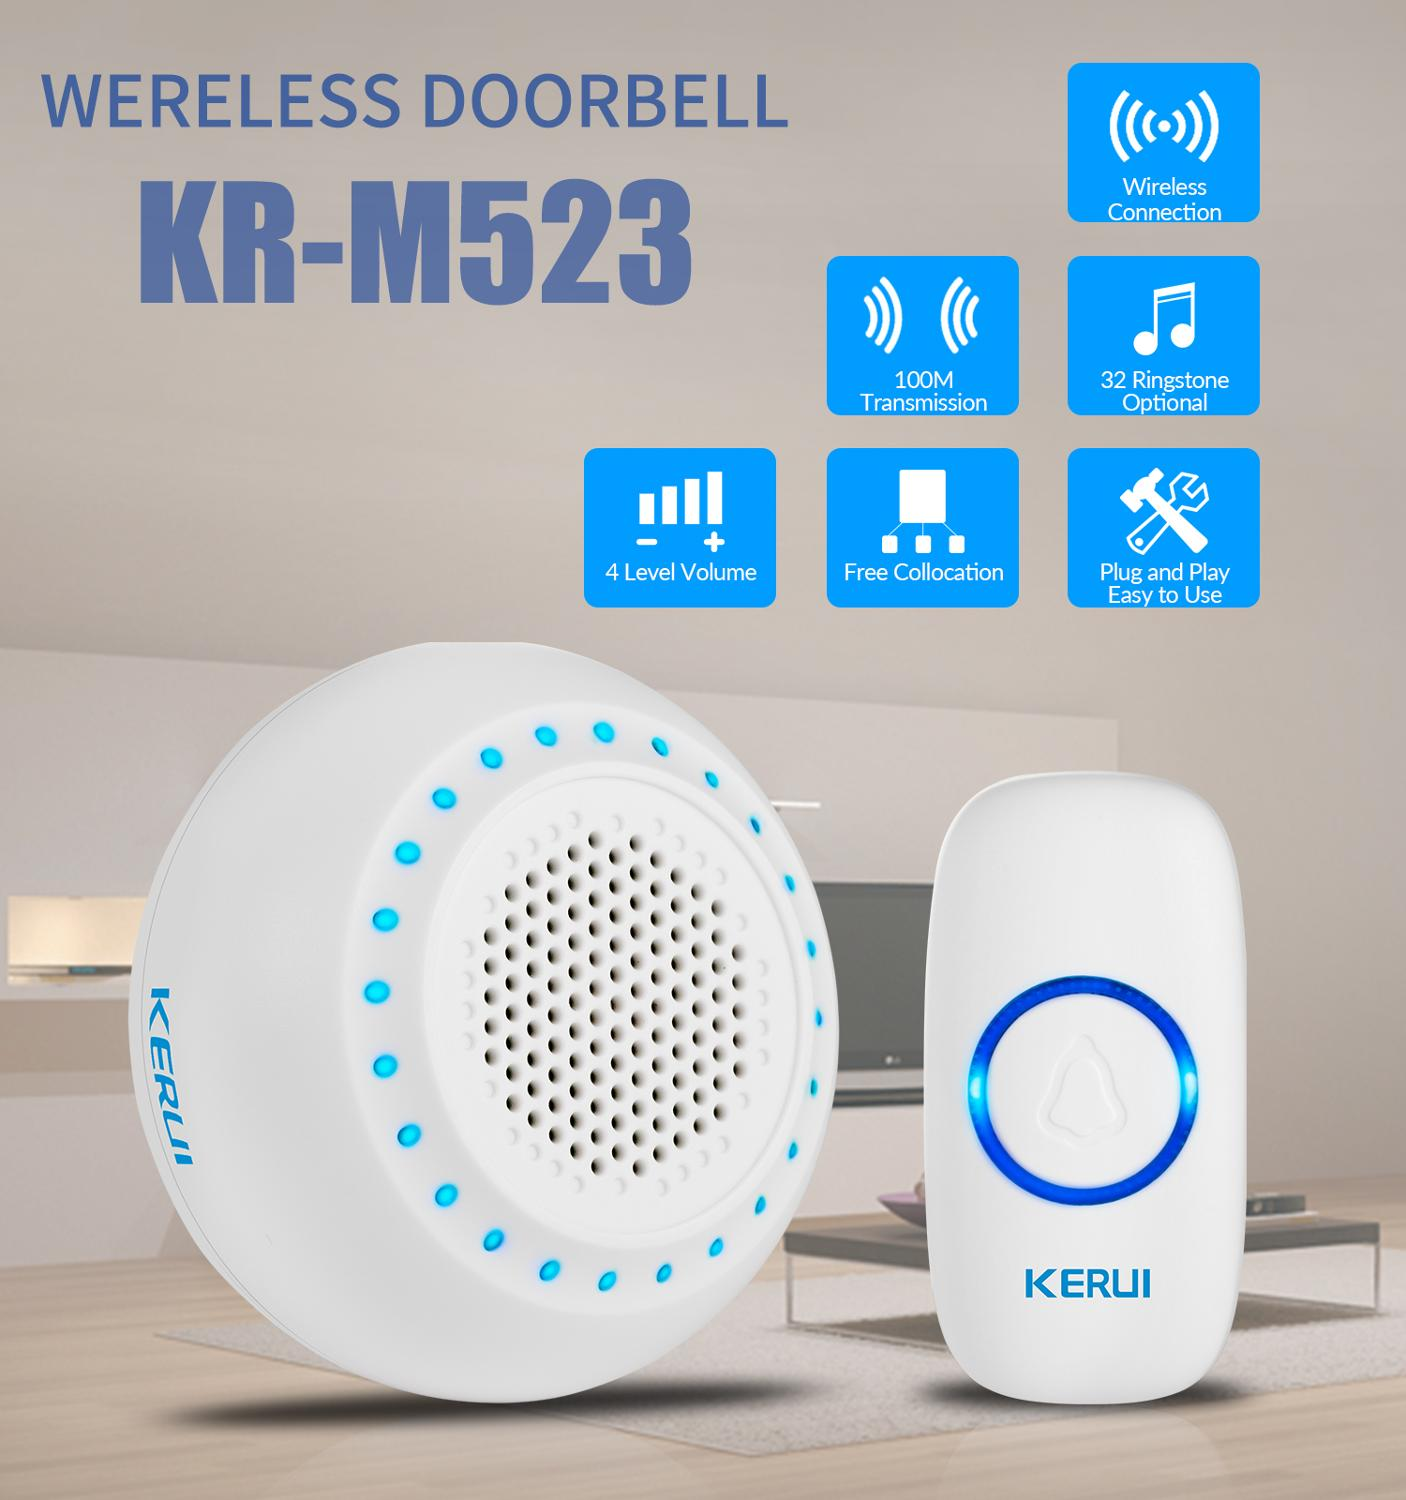 Kerui M523 Wireless Doorbell 32 Songs Home Security Welcome Wireless Doorbell 433Mhz Easy Installtion Door Button EU US UK Plug